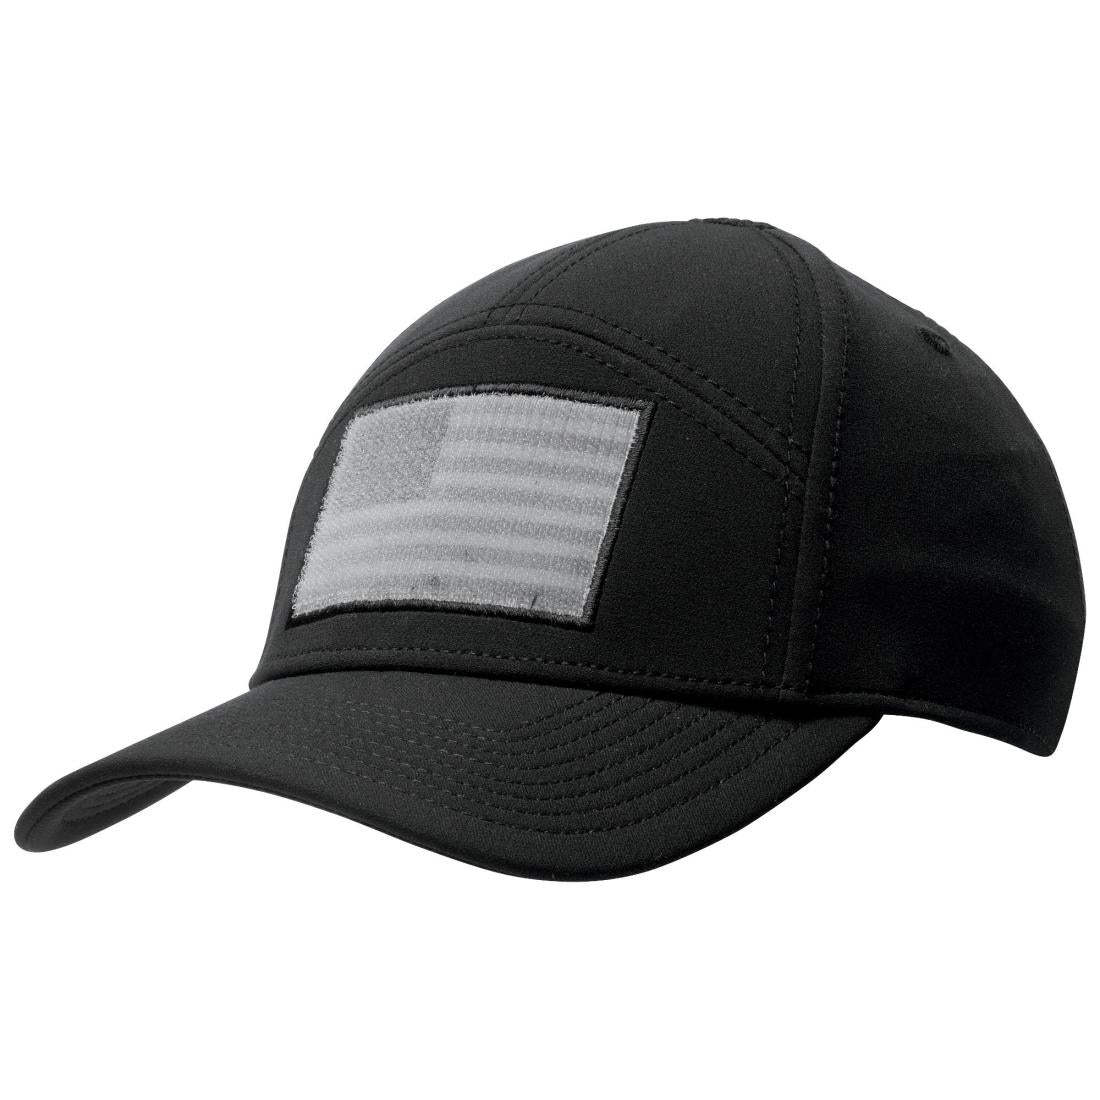 5.11 Tactical 89061 Men Operator 2.0 A-Flex Cap Black